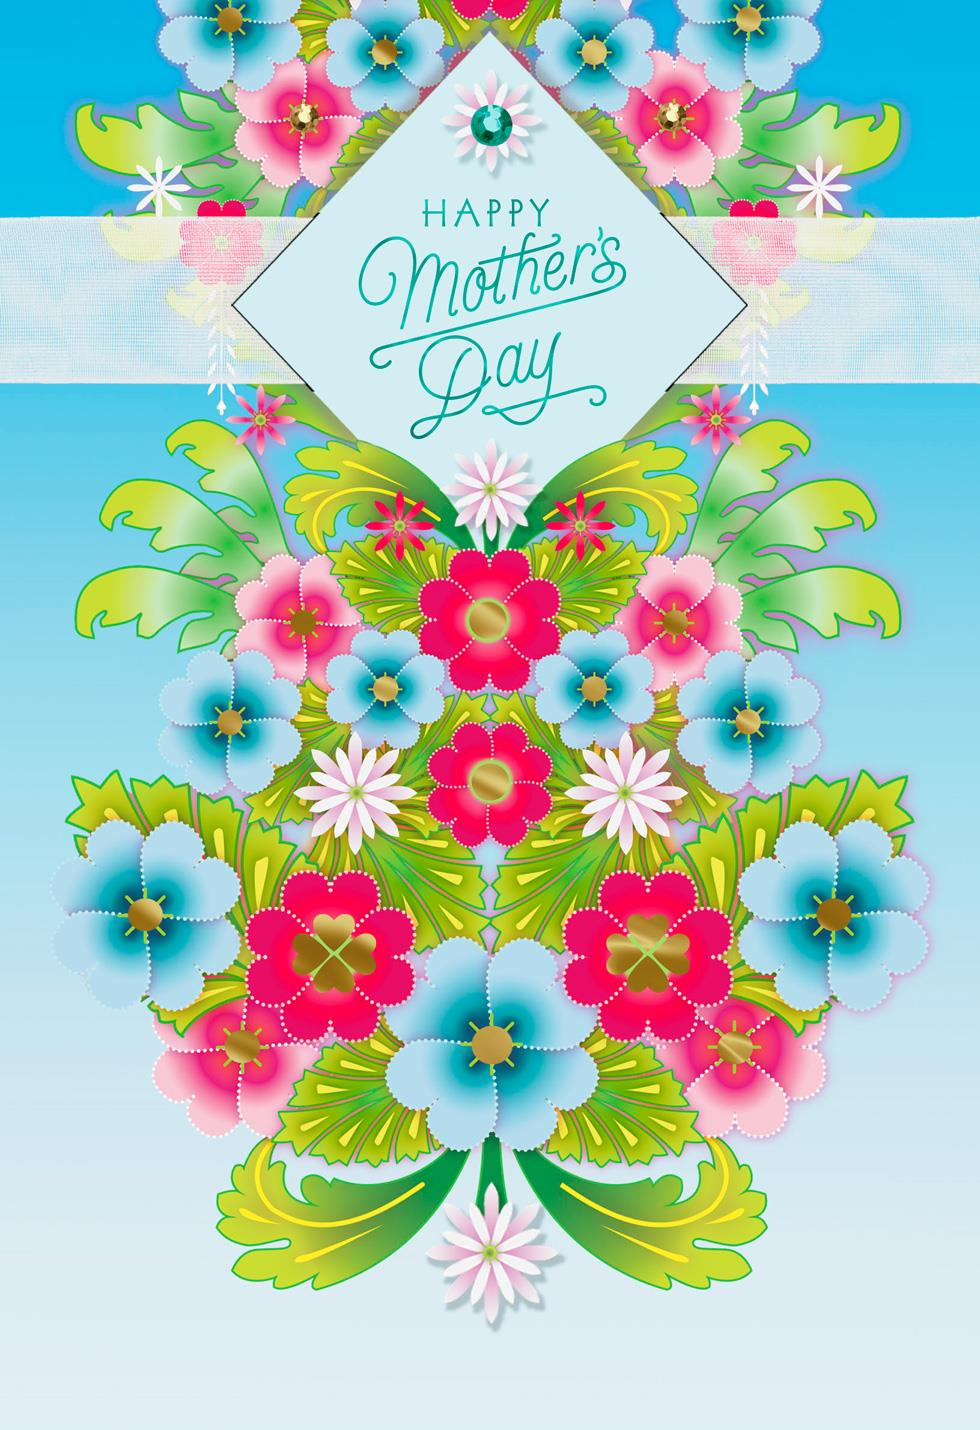 Catalina estrada cascading flowers mother 39 s day card Hallmark flowers